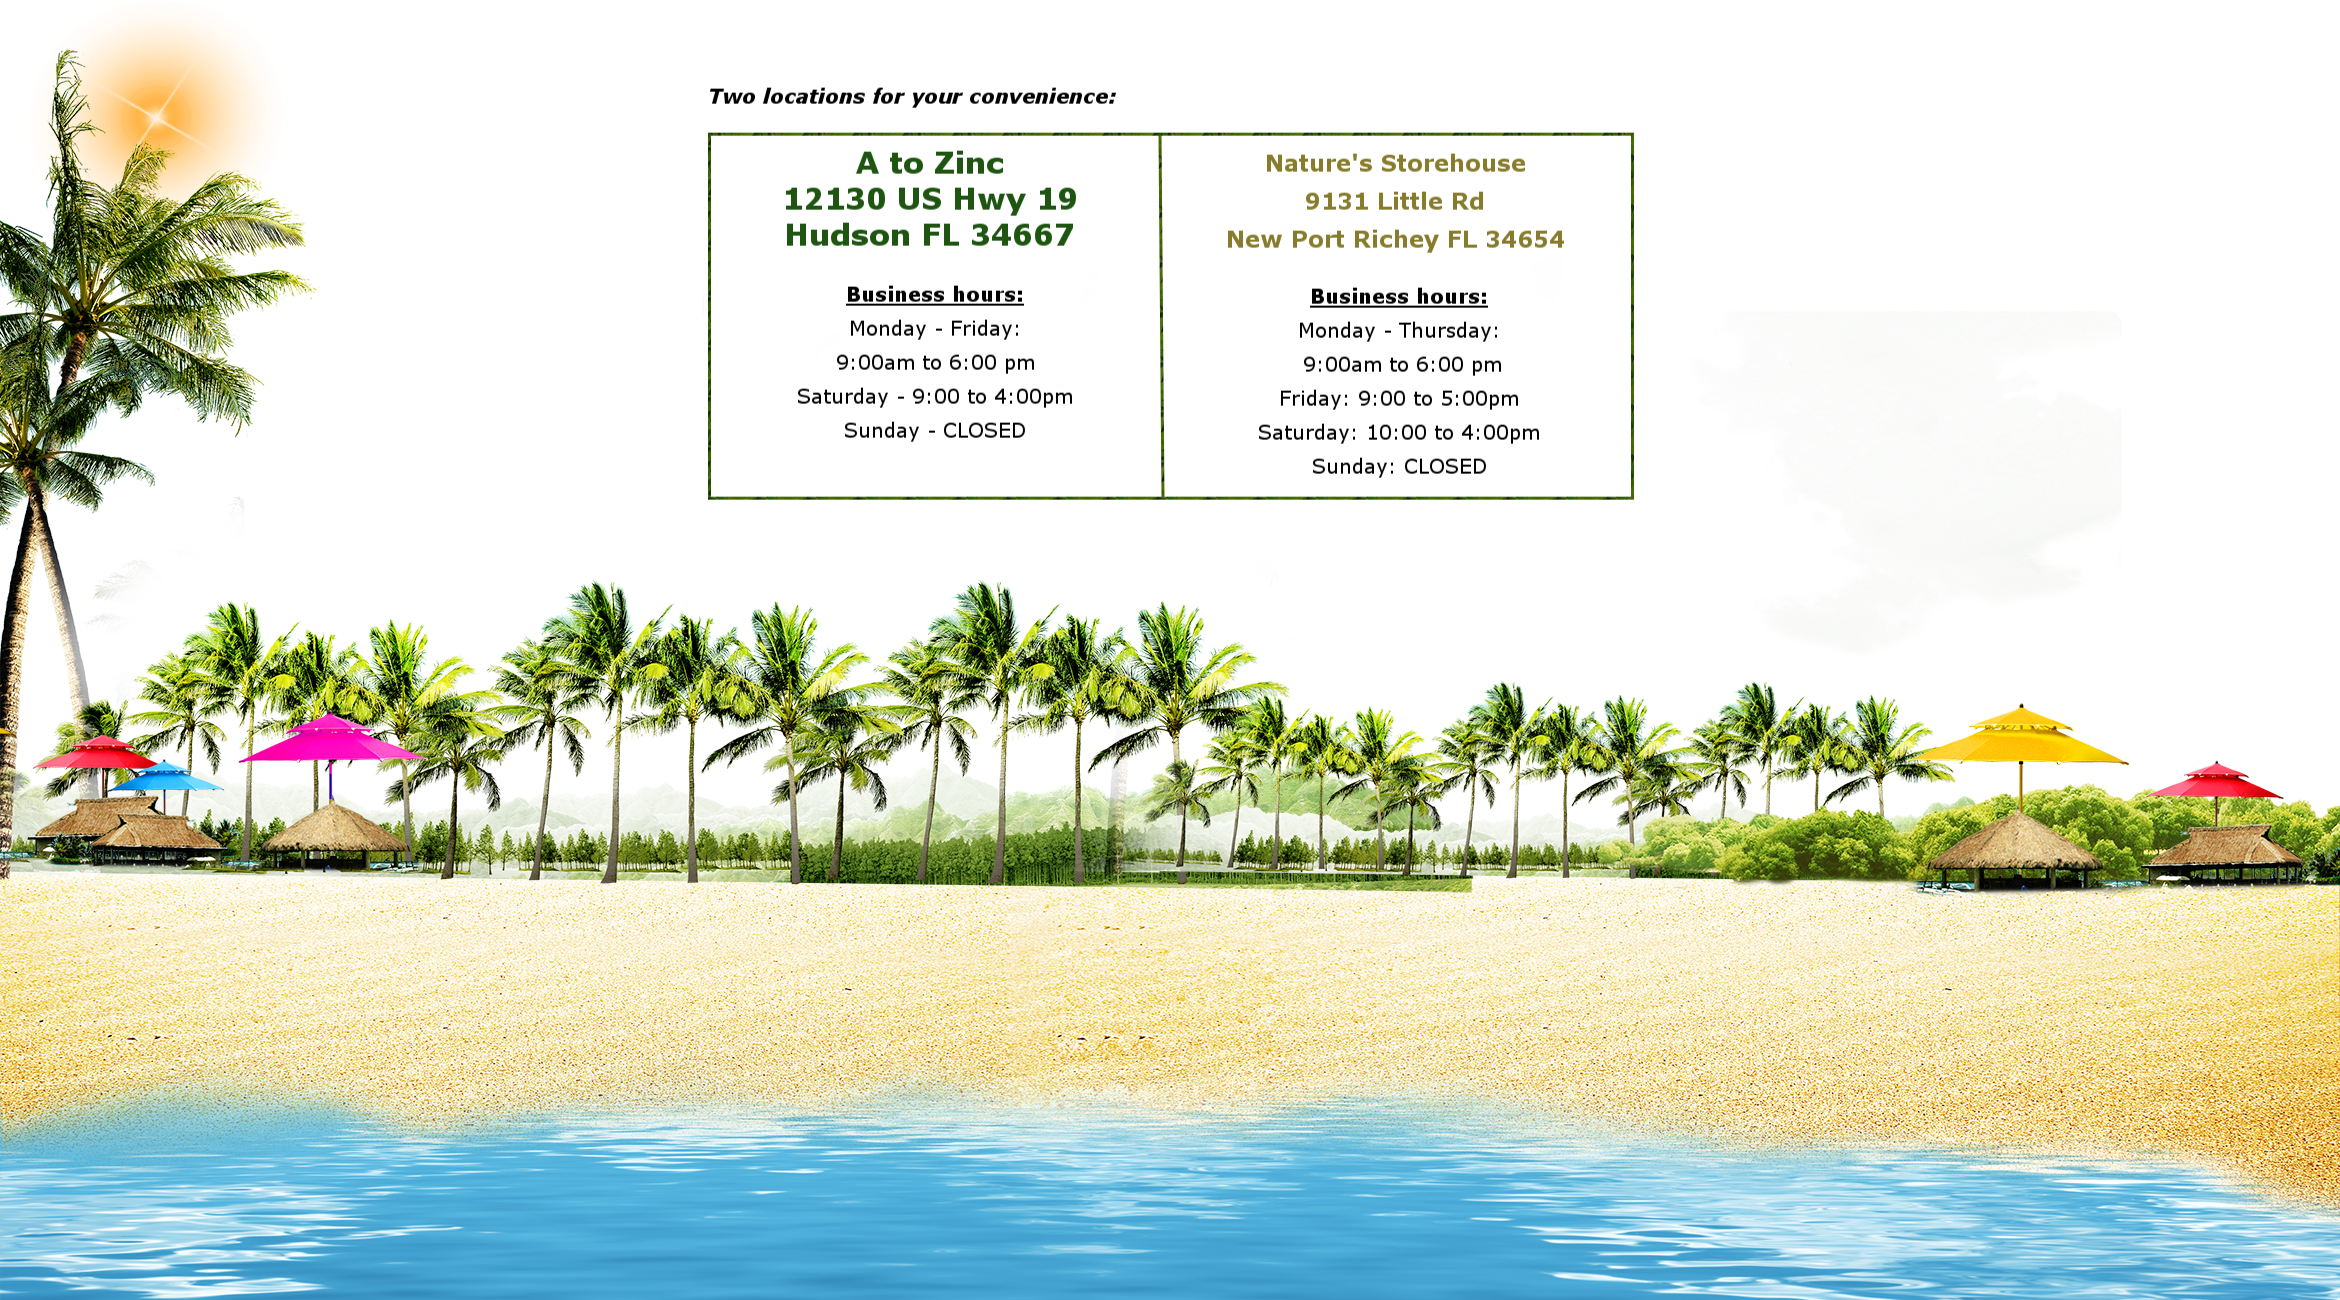 kisspng-beach-coast-poster-summer-beach-coconut-grove-play-background-5a716358a76ac0.3383725315173804406858new.png